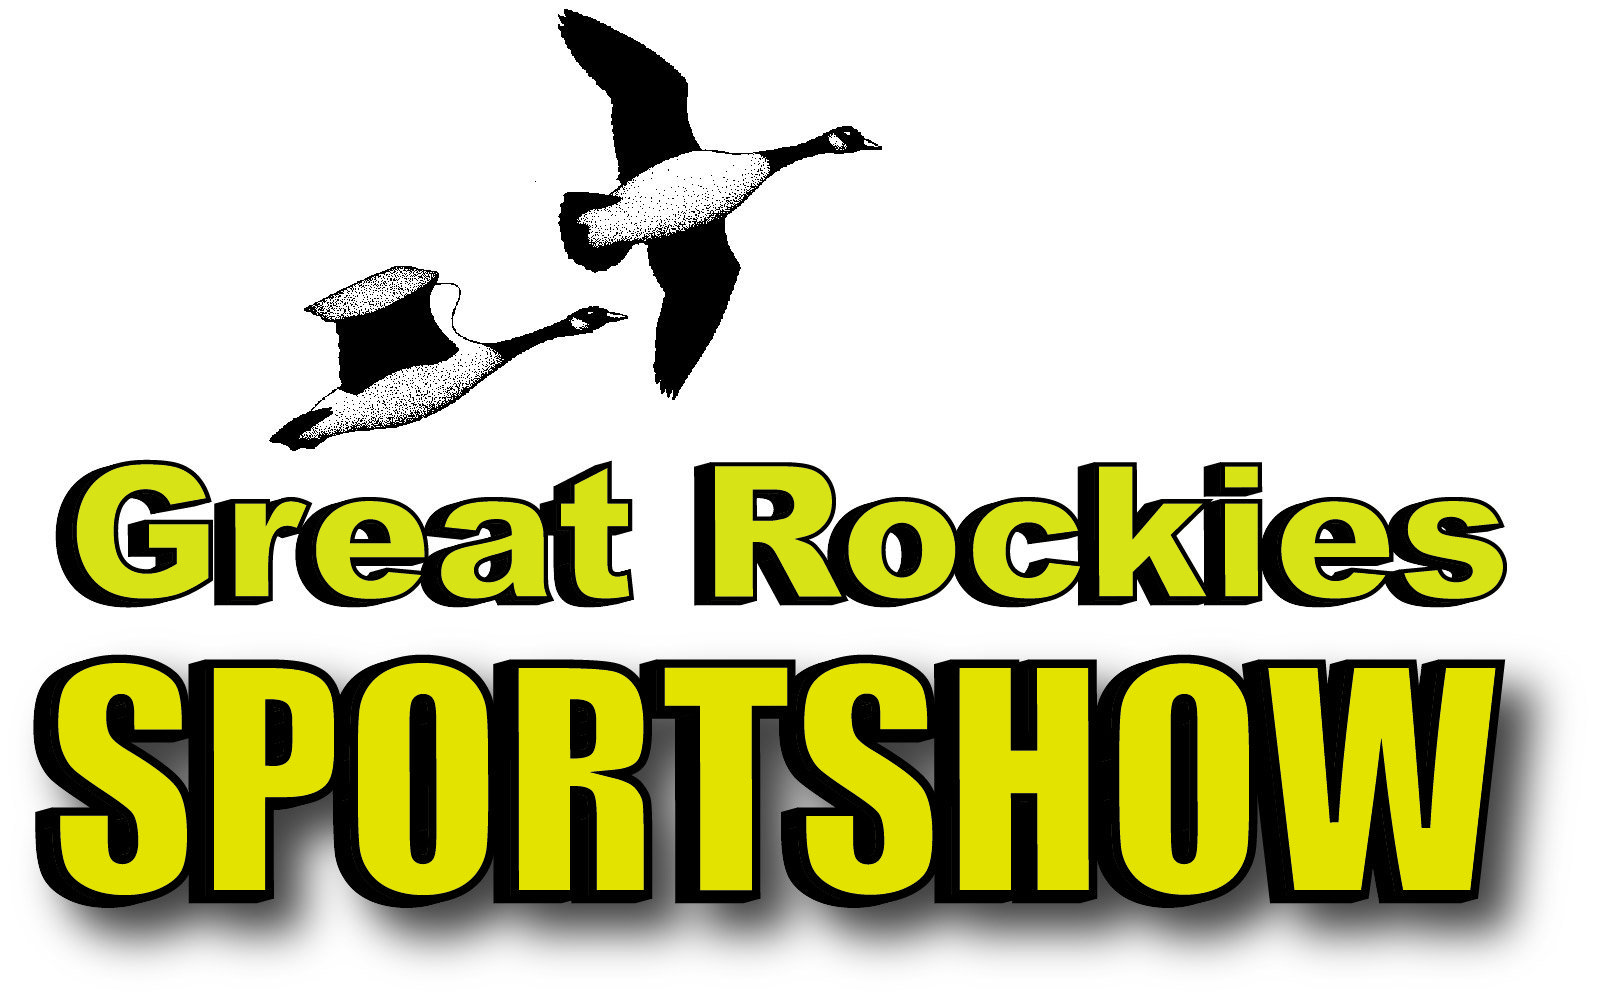 Montana's Great Rockies Sportshow